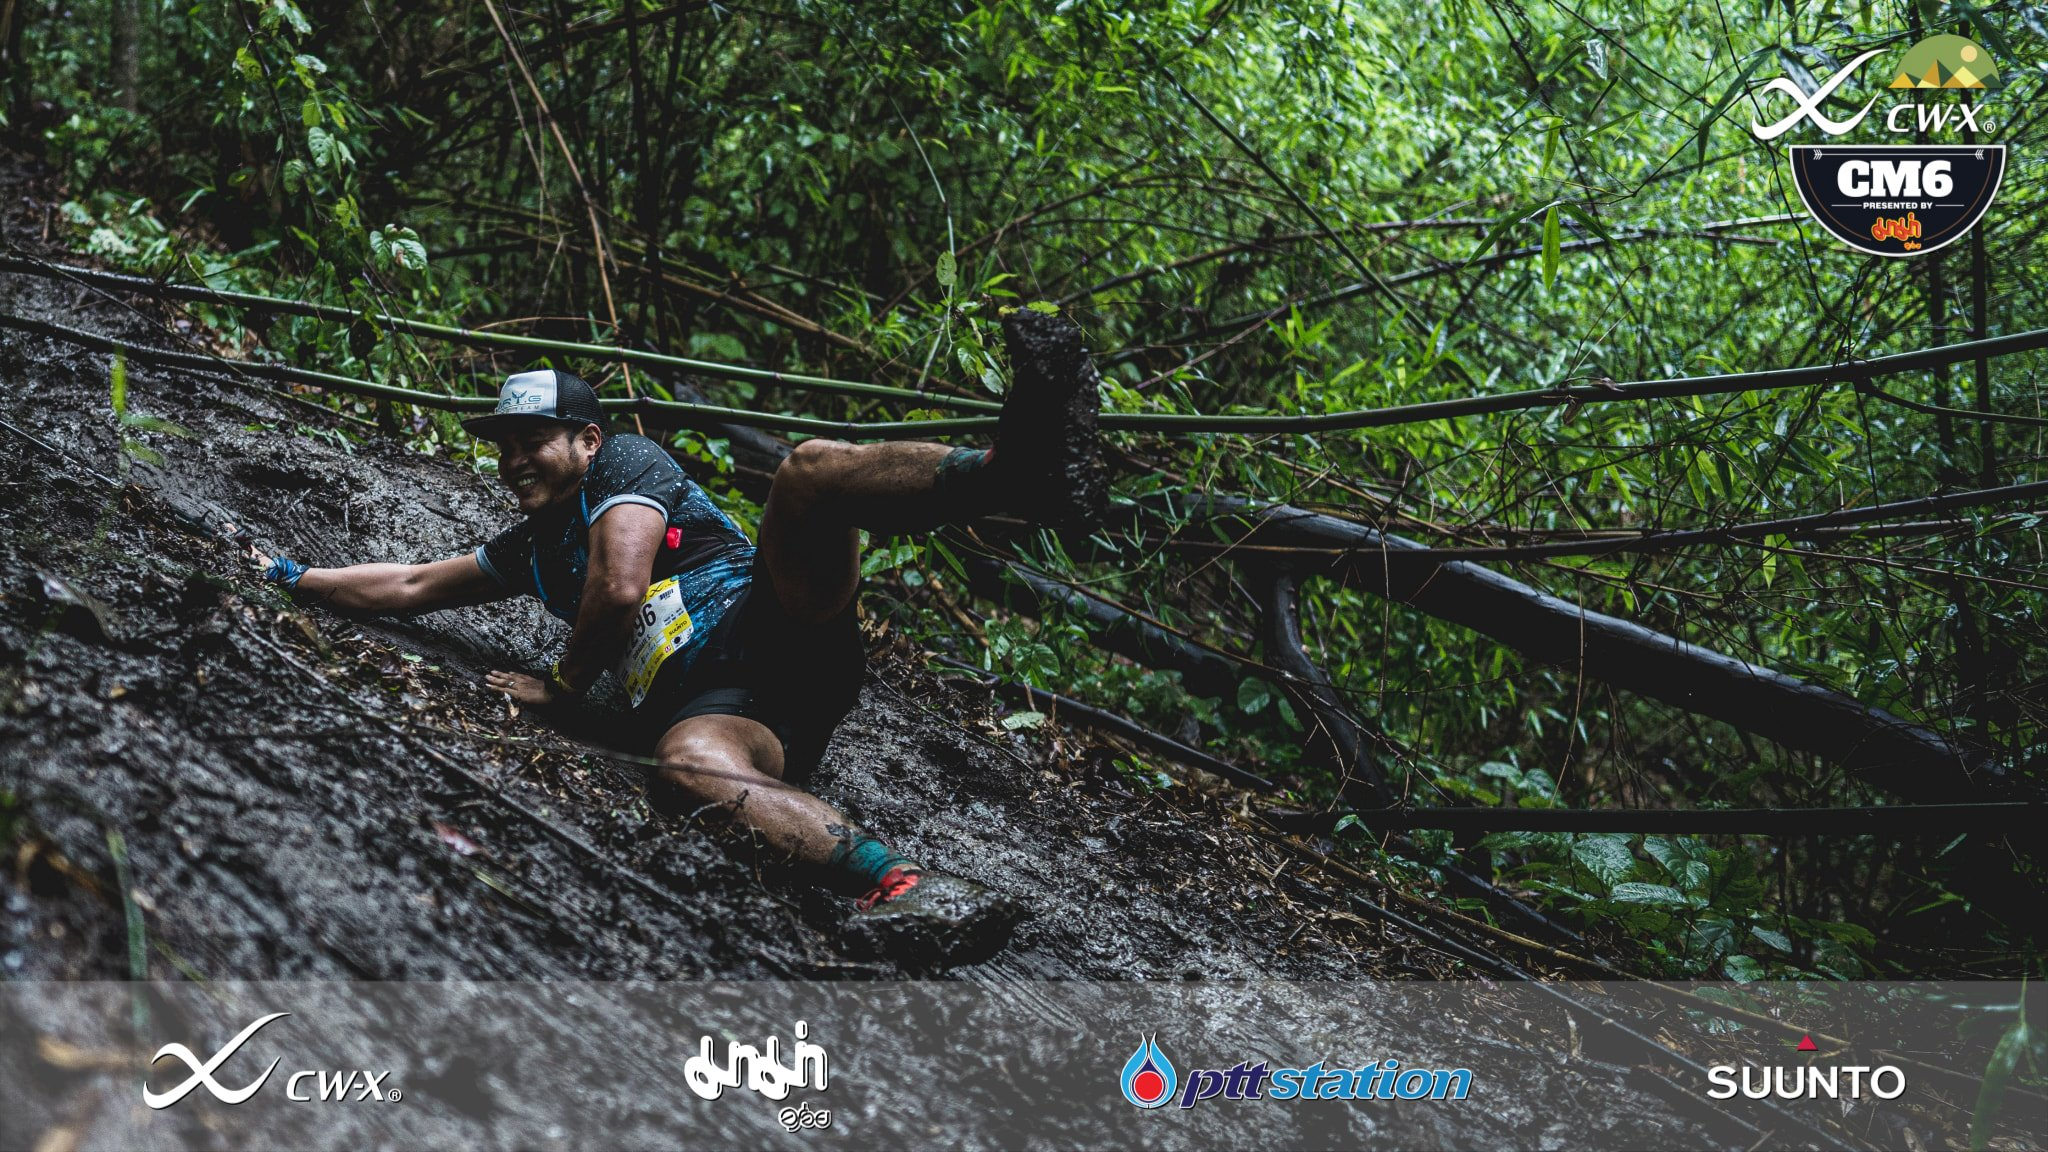 With six races and thousands of runners, the first trail of the race saw a lot of action and a lot of rain.  Thankfully I finished before it rained.